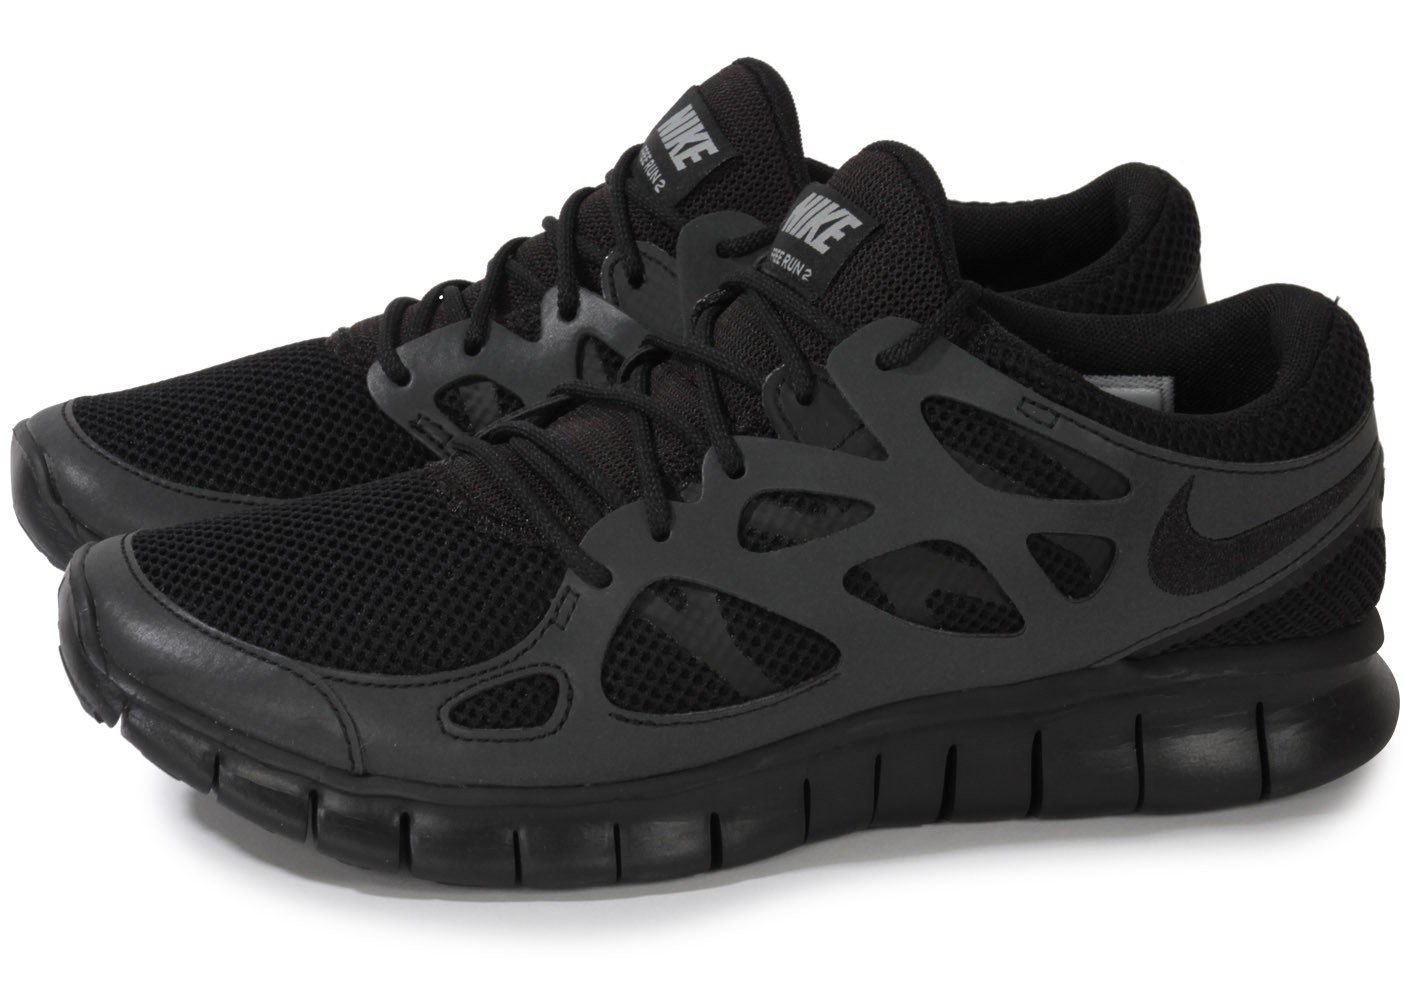 Free Run 2 Pas Cher Homme,nike free run 2 chaussures running homme